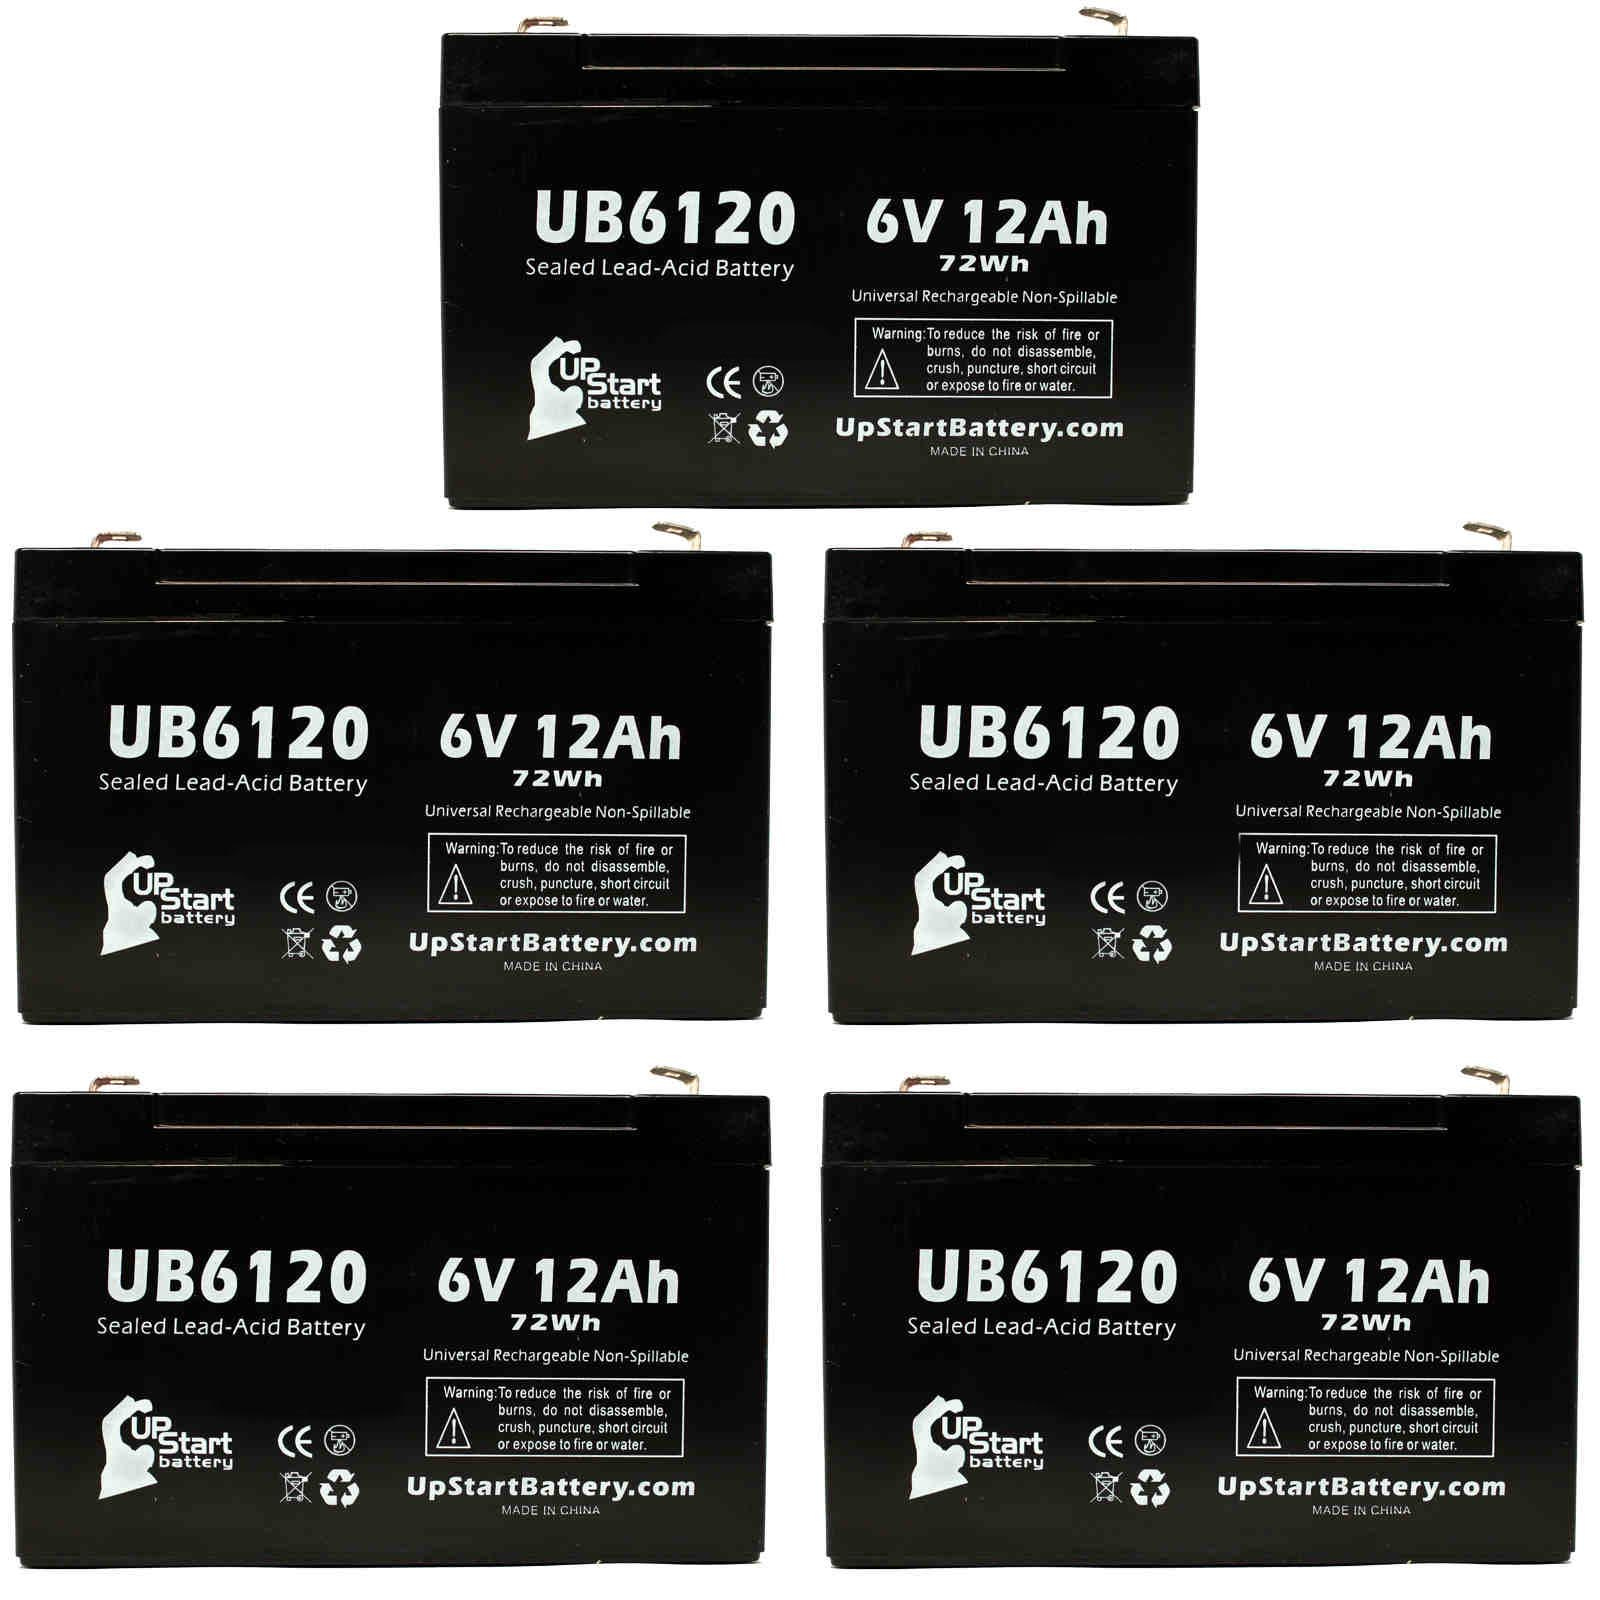 5x Pack - ACCESS BATTERY SLA6100 Battery Replacement - UB6120 Universal Sealed Lead Acid Battery (6V, 12Ah, 12000mAh, F1 Terminal, AGM, SLA) - Includes 10 F1 to F2 Terminal Adapters - image 4 de 4